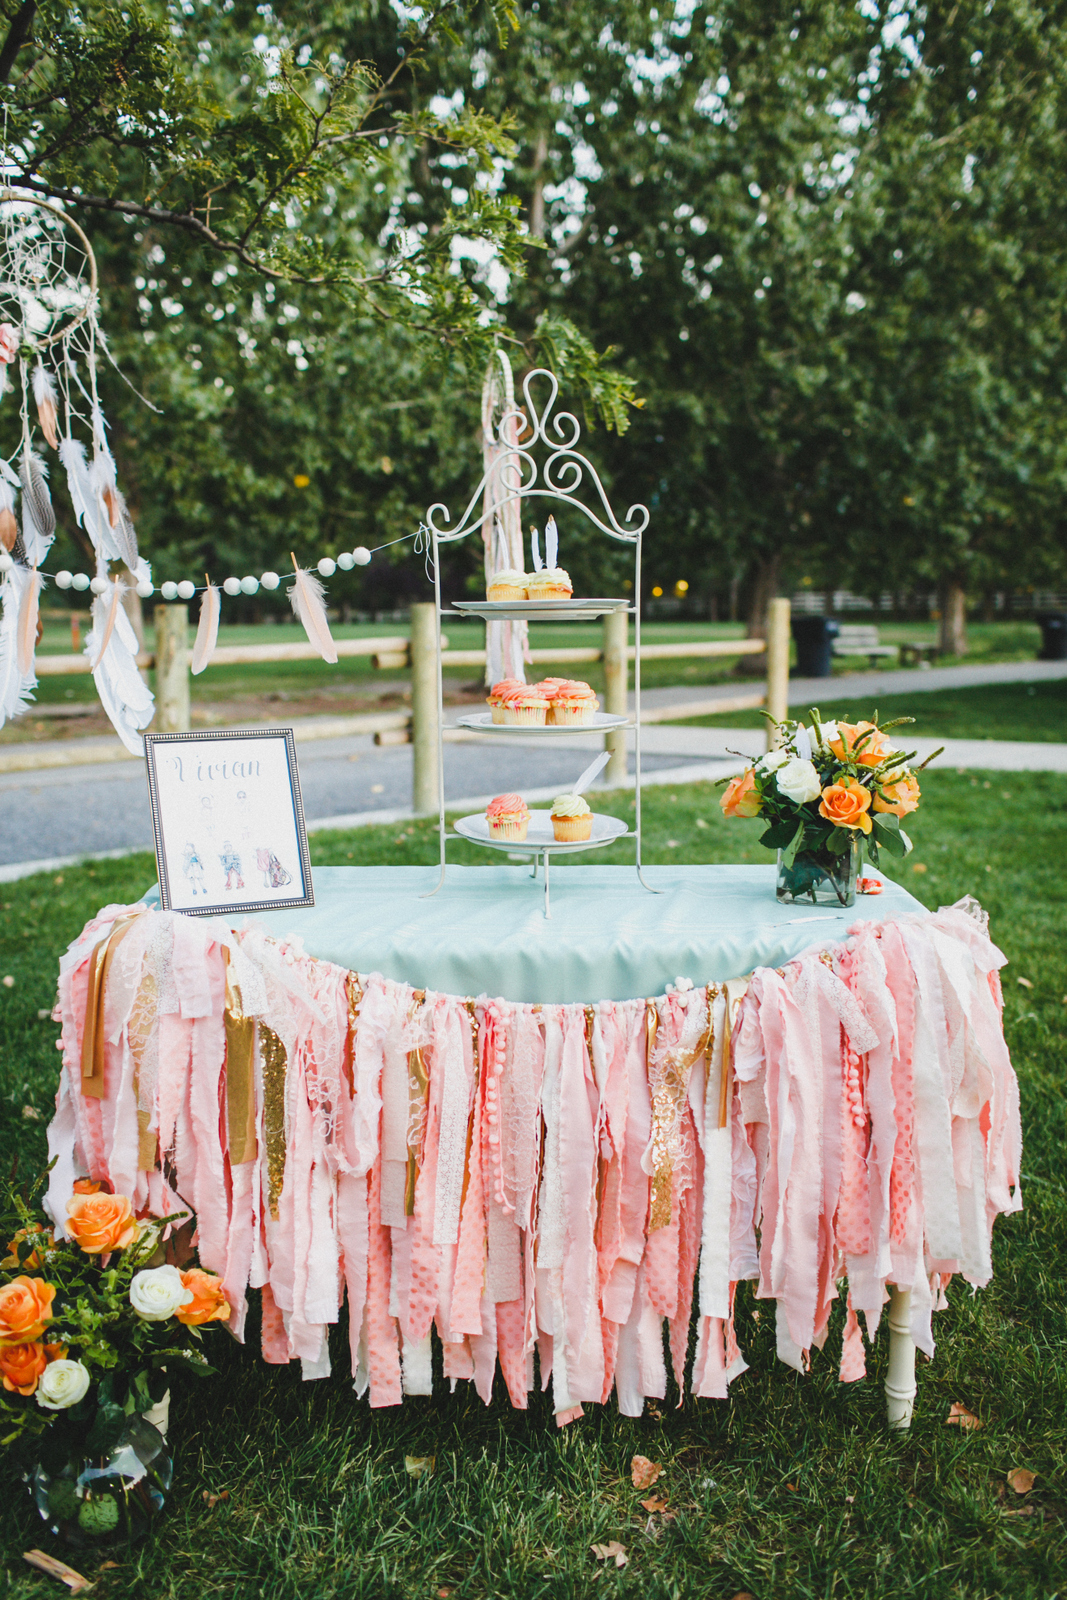 Pearl and Jane Banners at Boho Birthday Party - Photo by Summer Nicole Photo